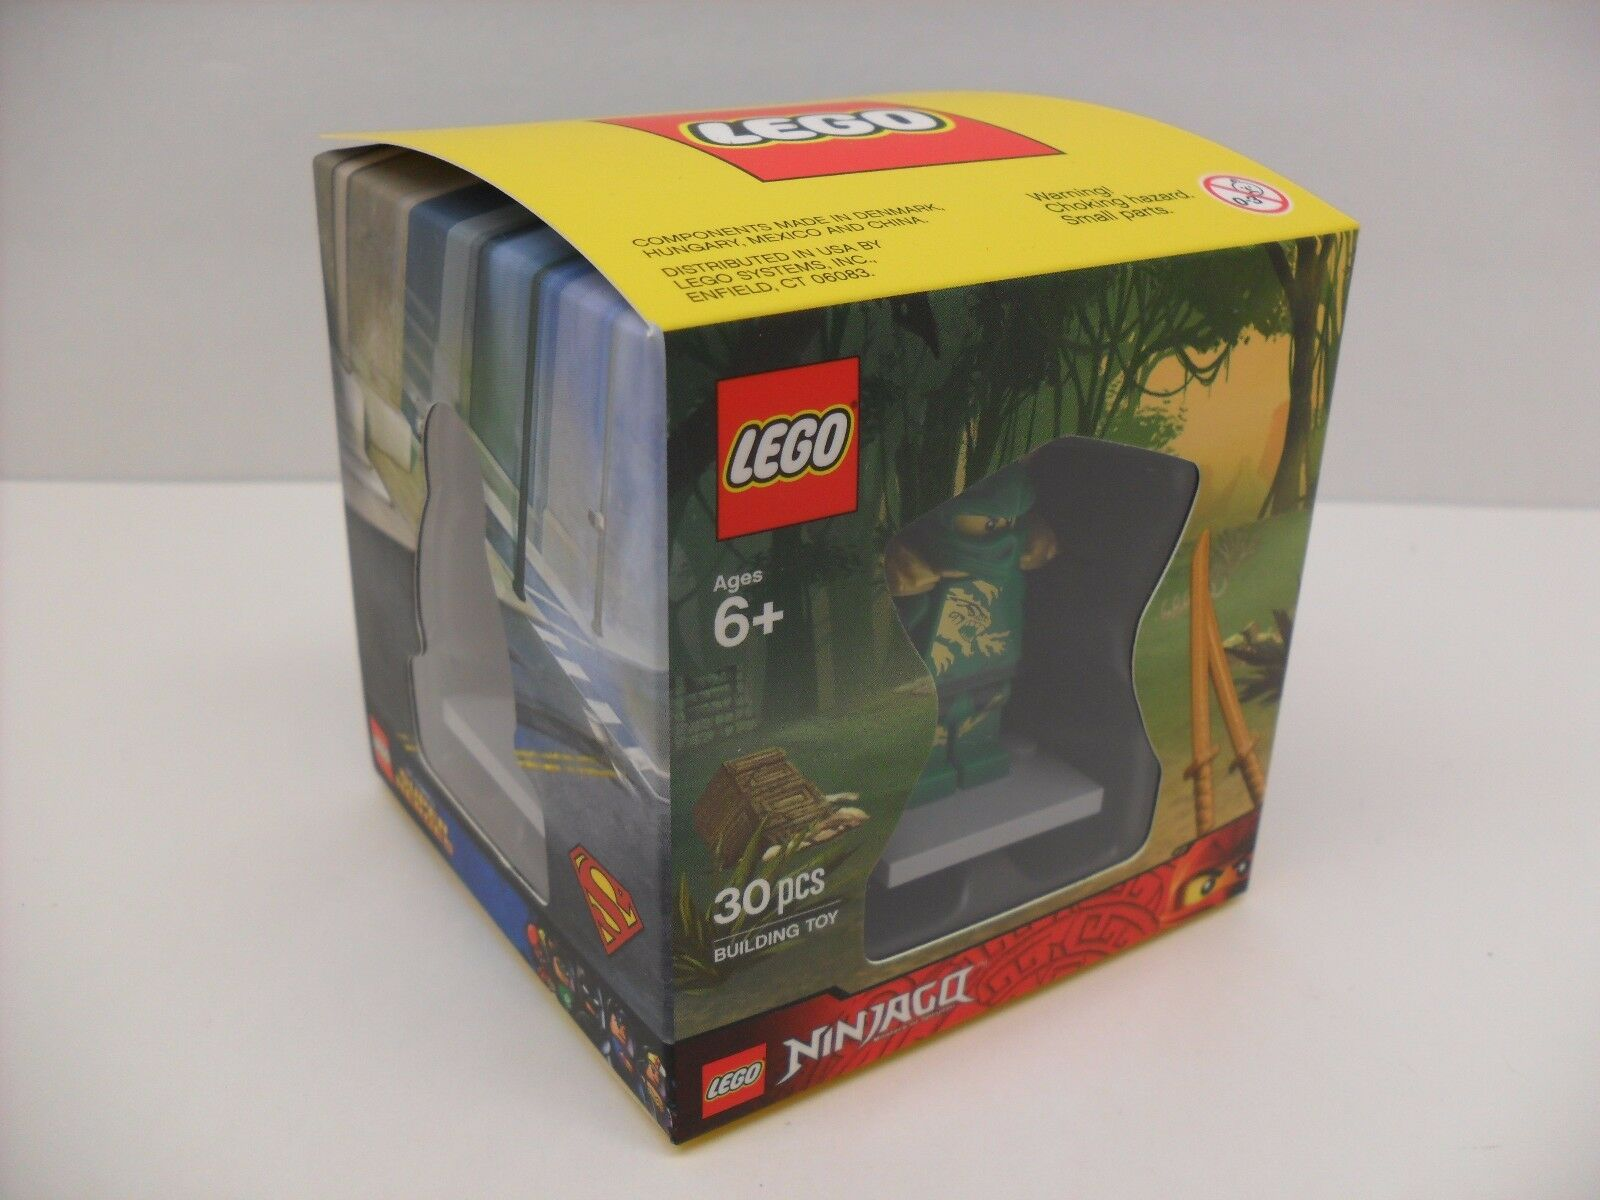 ERROR 2015 Factory Sealed LEGO Target Exclusive 4 Minifigure Cube Set